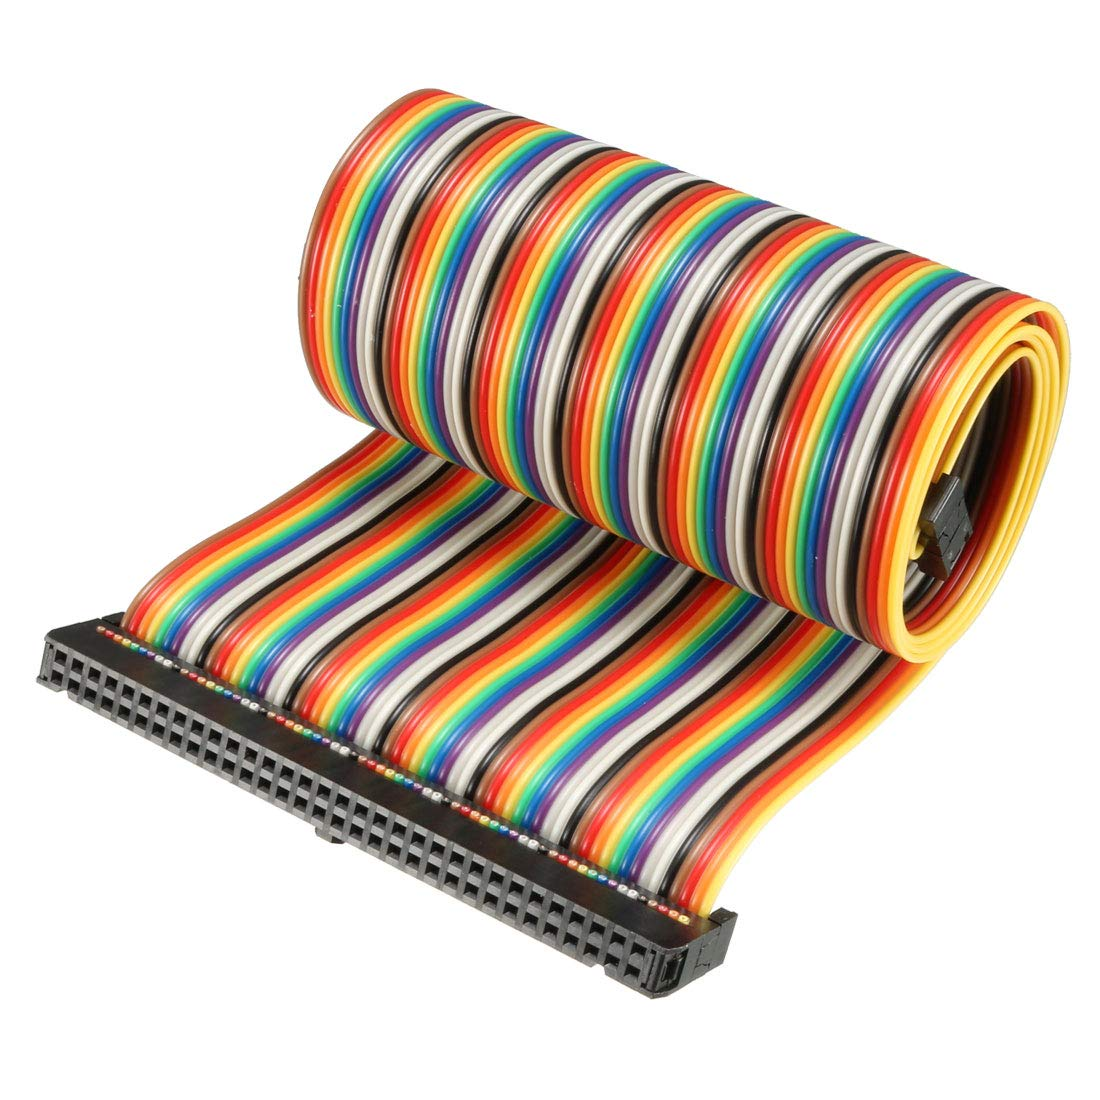 uxcell IDC Rainbow Wire Flat Ribbon Cable 64 Pins 48cm Length 2.54mm Pitch Type-C